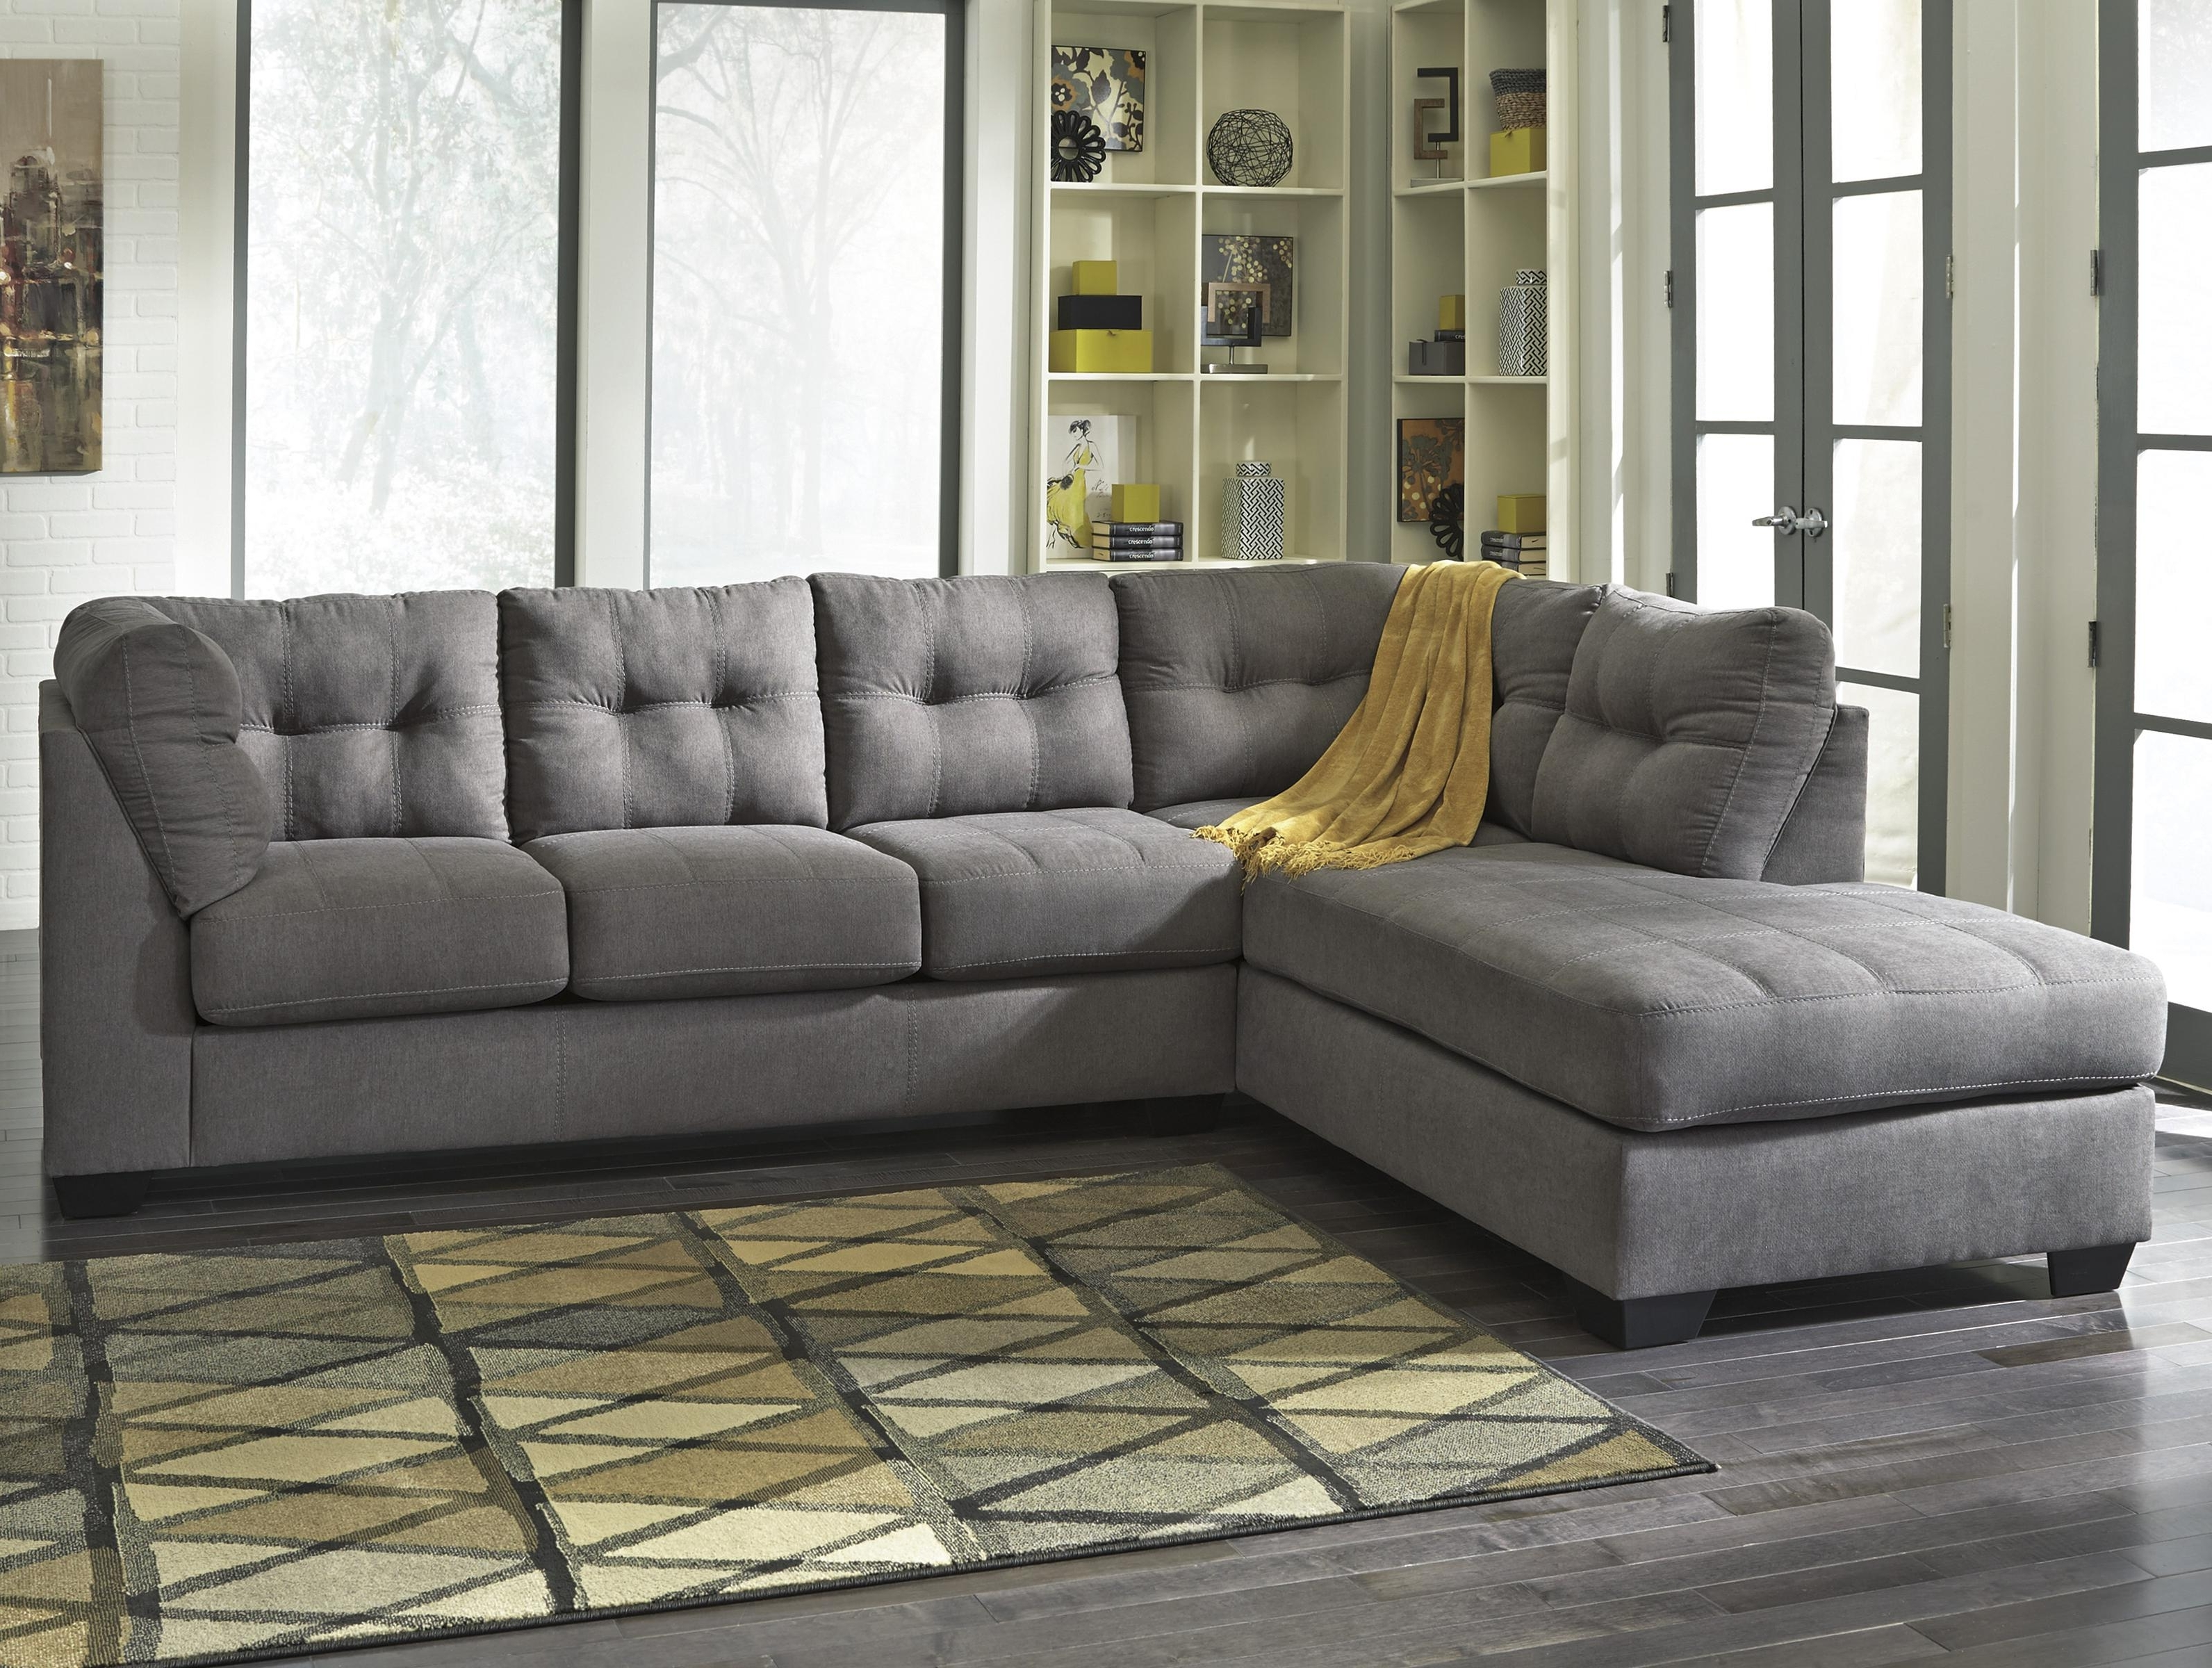 Benchcraft Maier – Charcoal 2 Piece Sectional W/ Sleeper Sofa Inside Current Ashley Furniture Sofa Chaises (View 7 of 15)